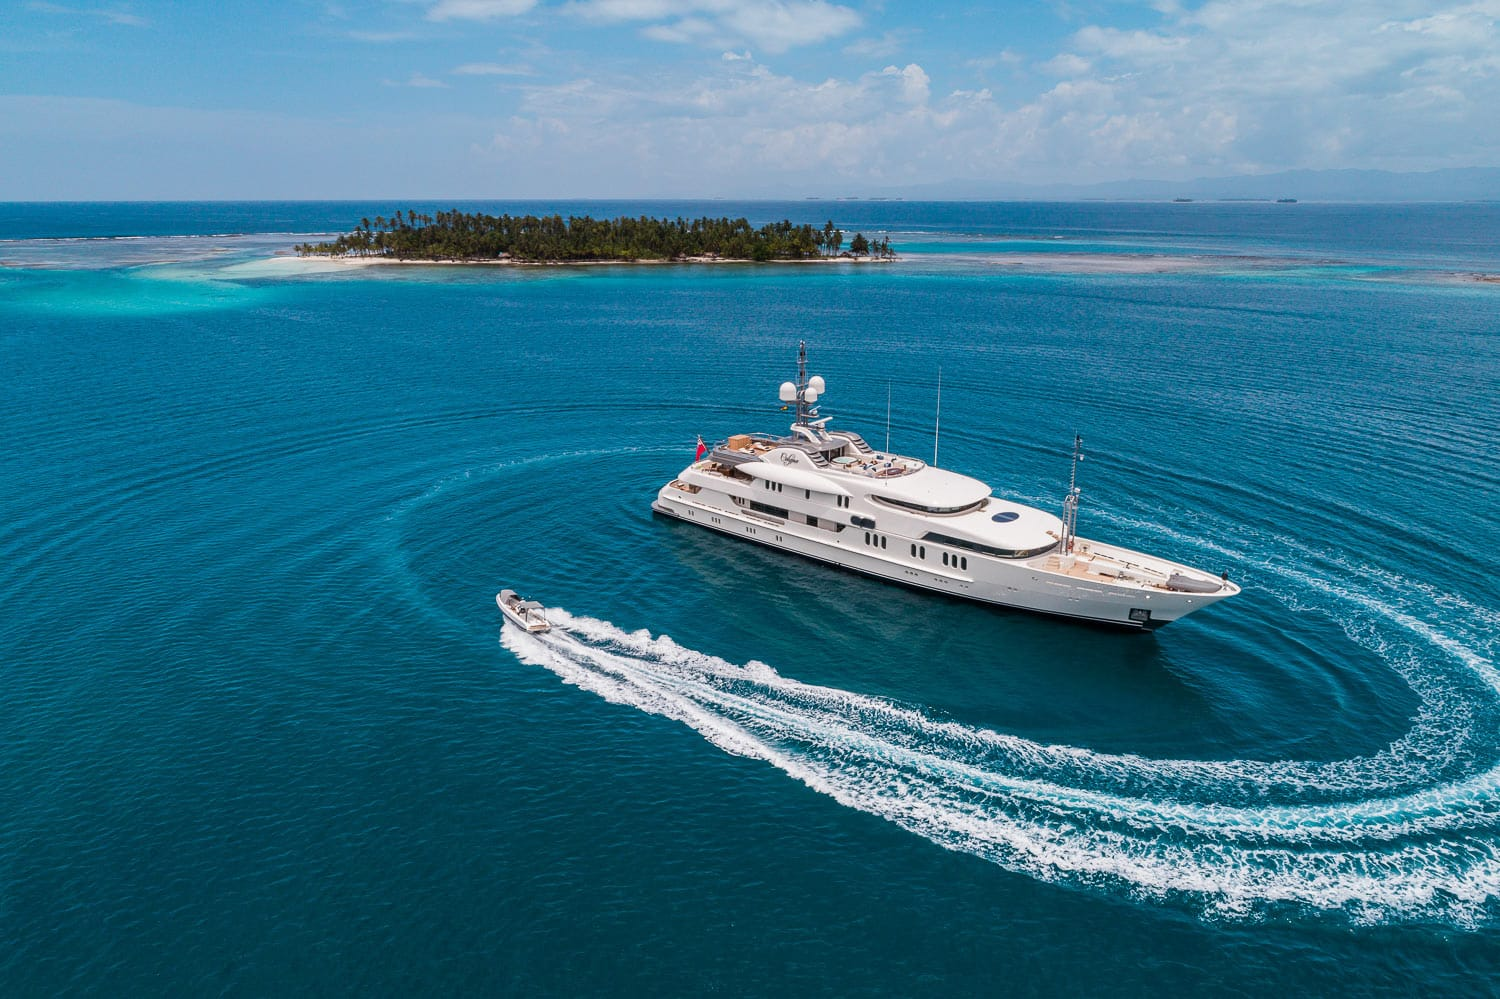 Aerial view of 202ft Amel motor yacht CALYPSO w tender circling boat